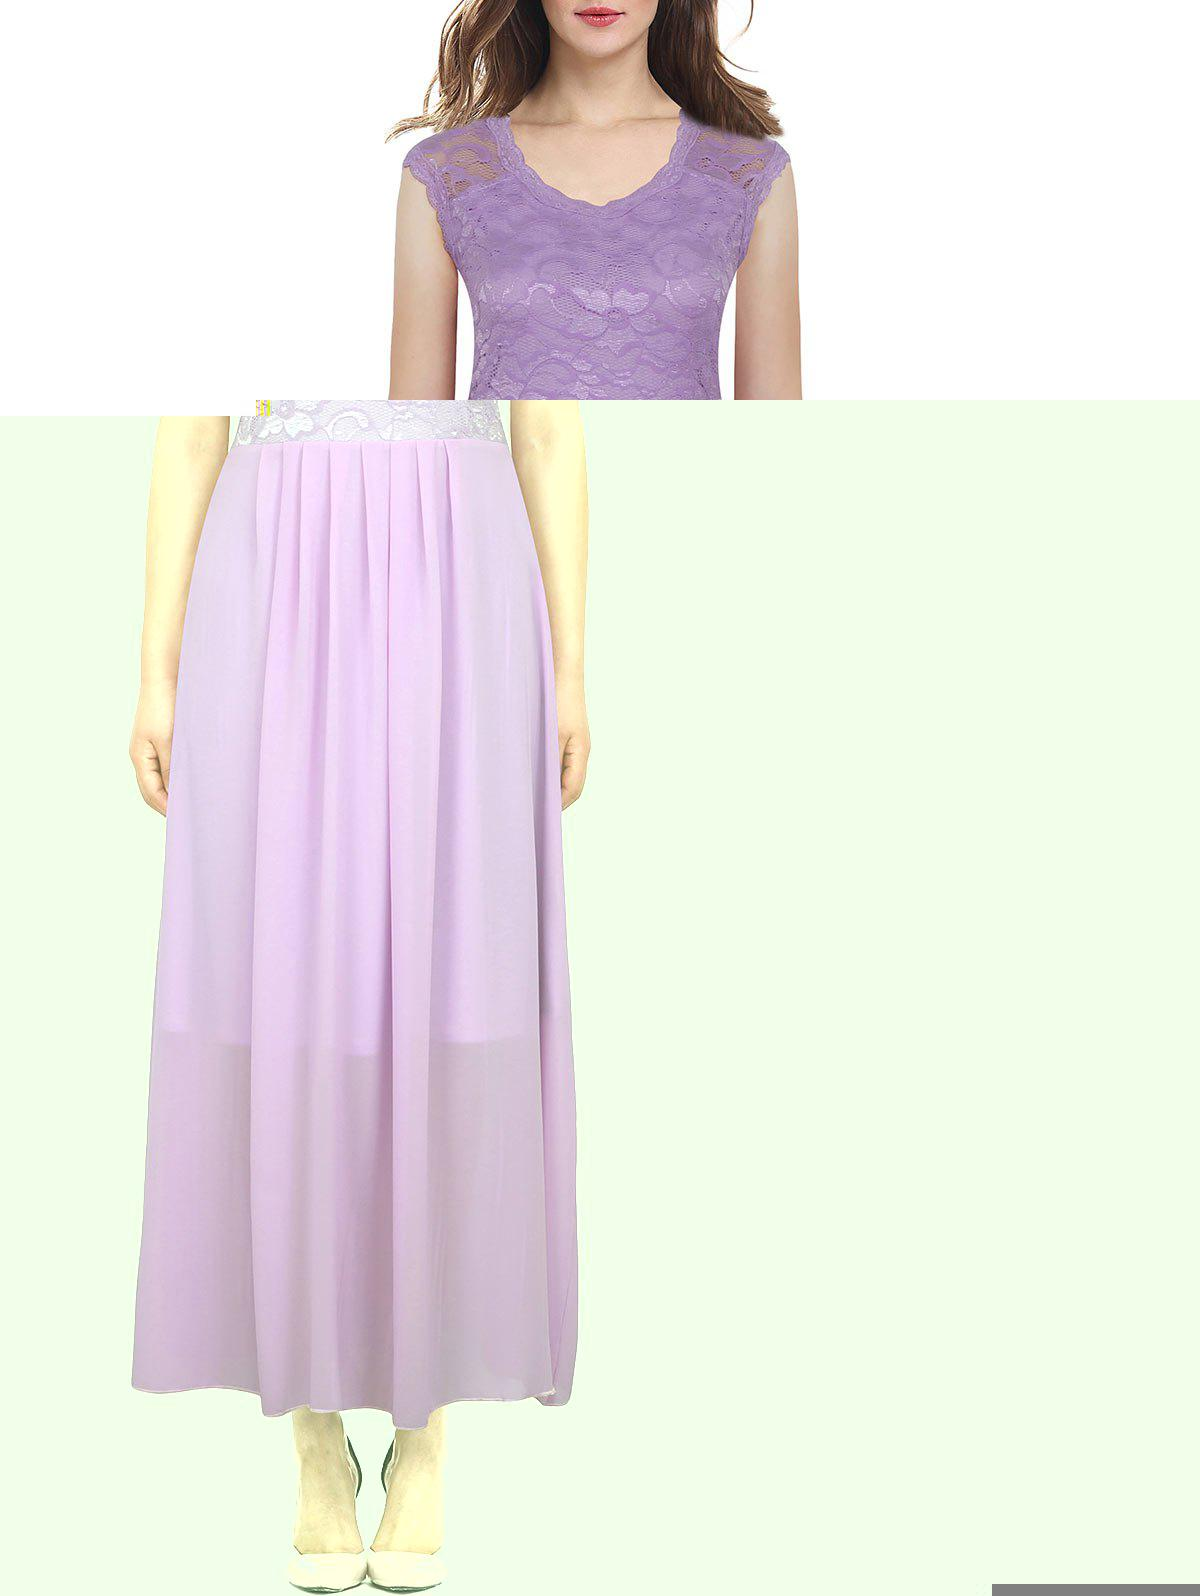 High Waisted Floral Lace Insert Dress - PURPLE L